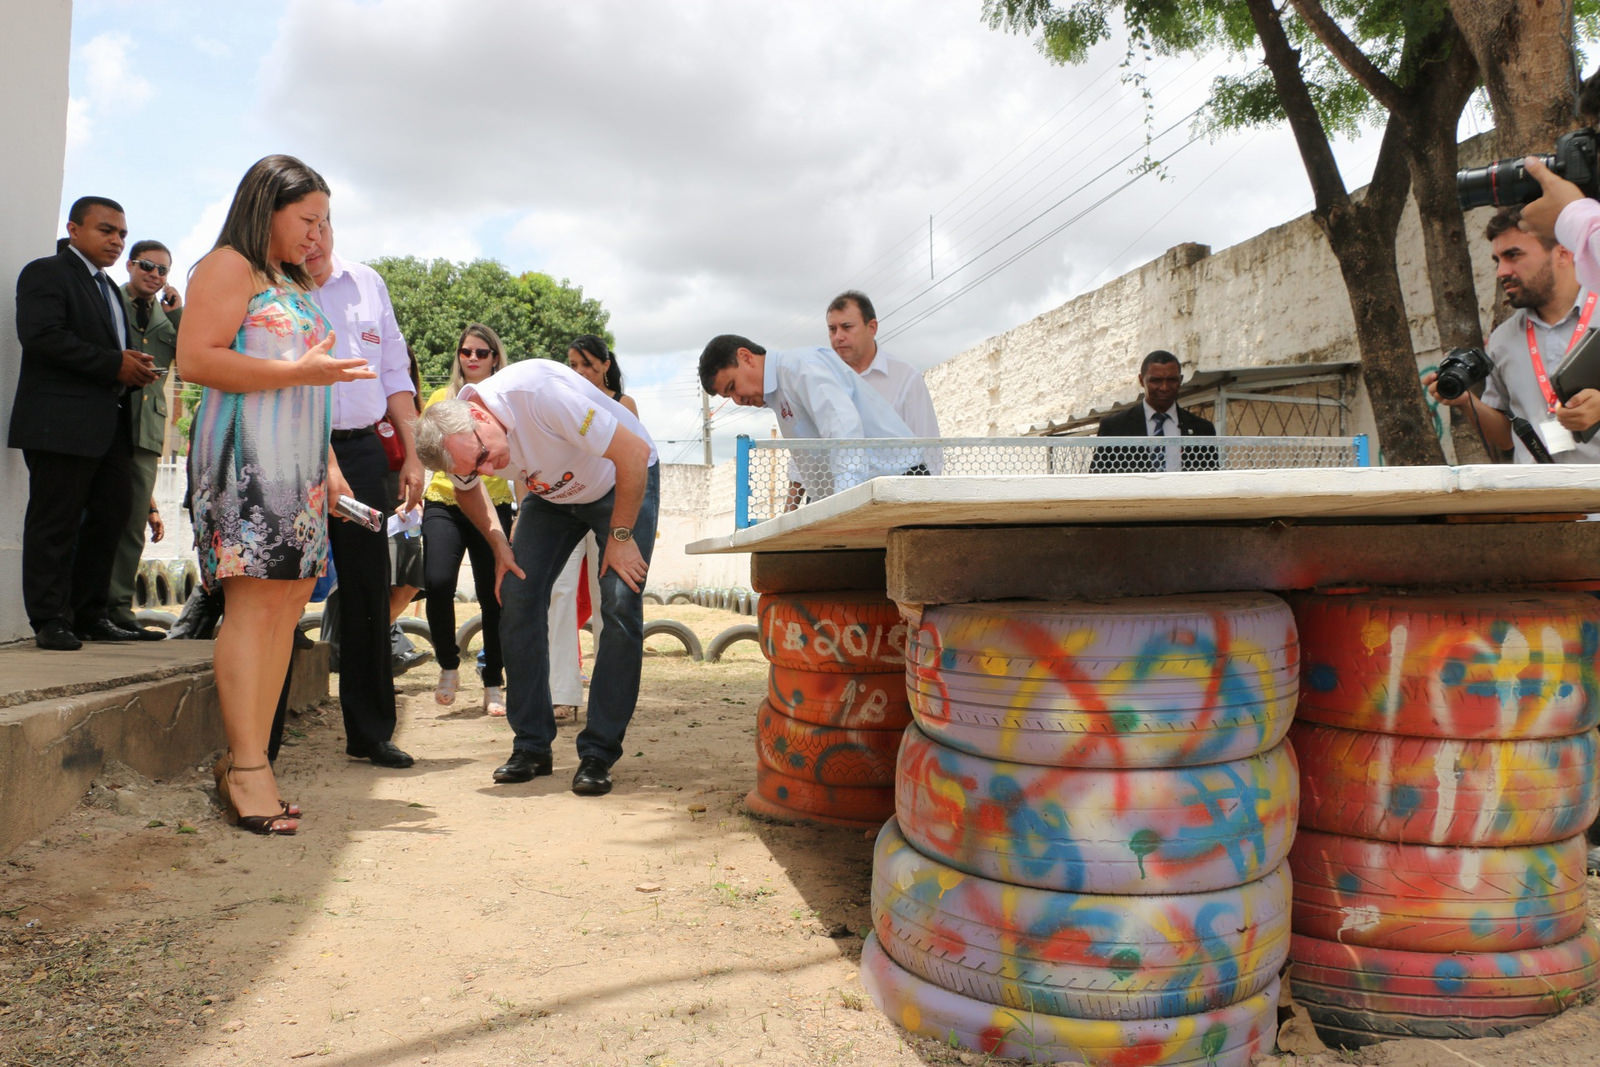 Image of government officials looking at tyres